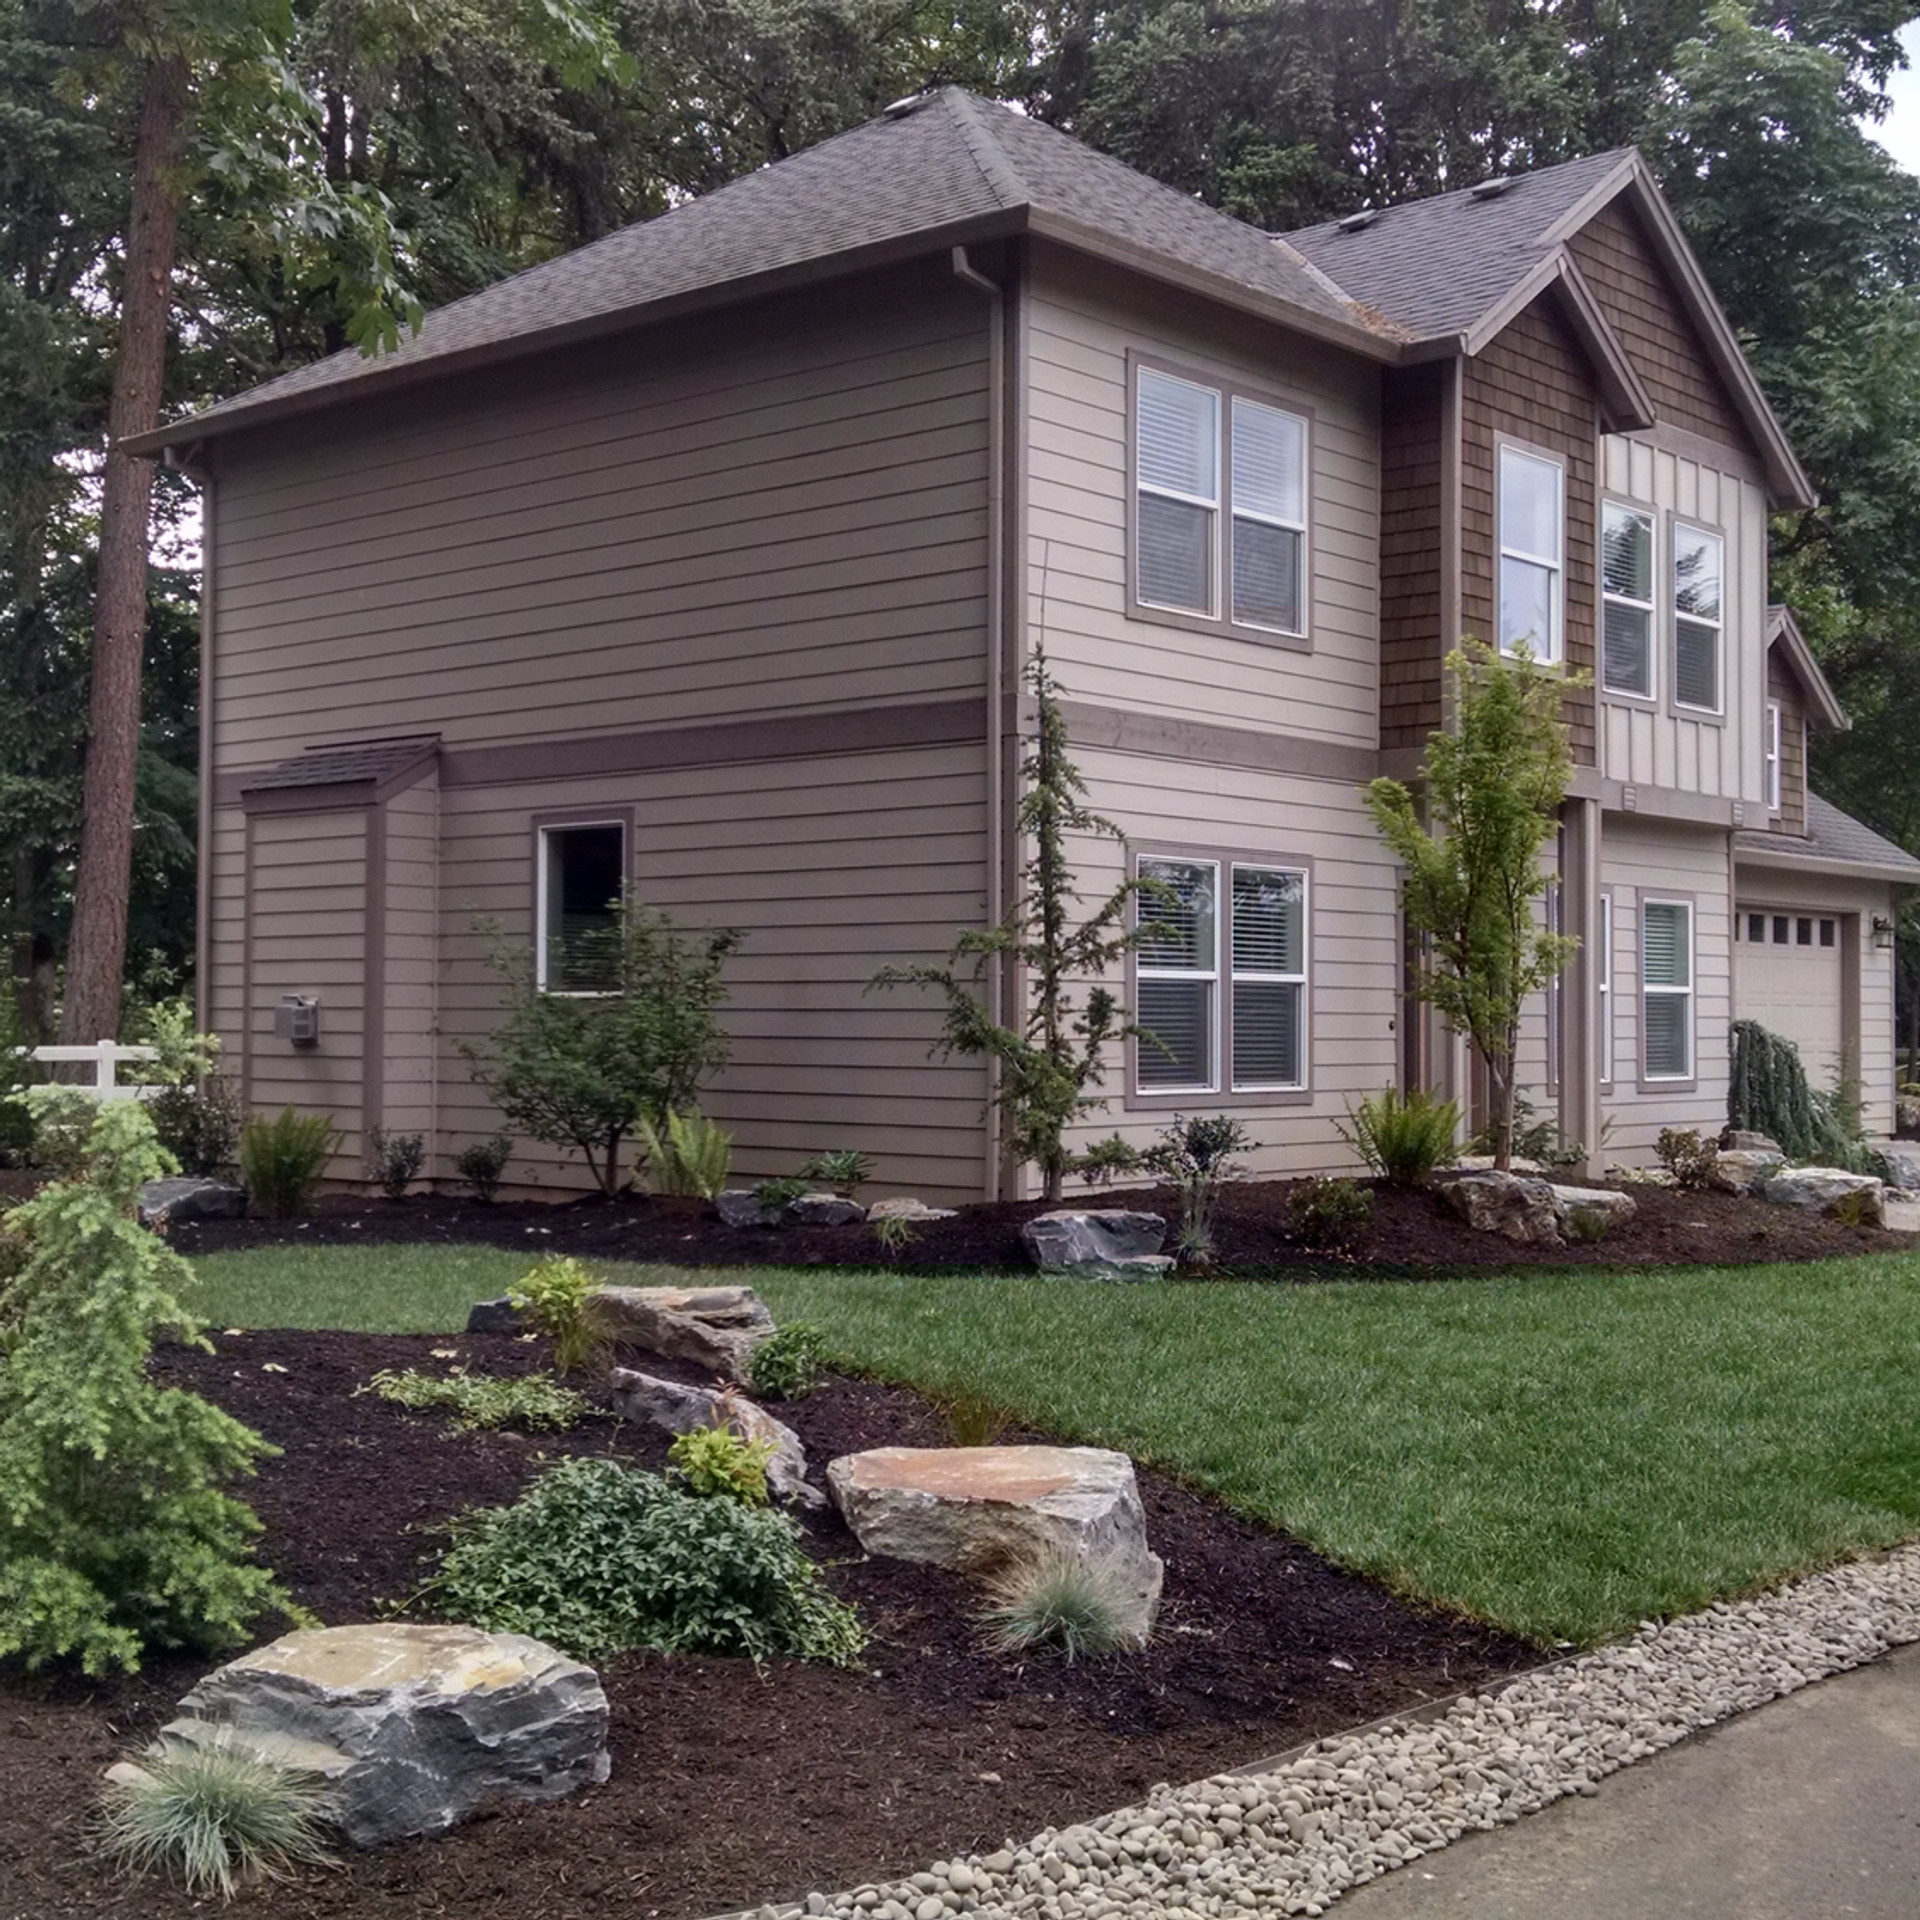 Landscaping, Side View.jpg